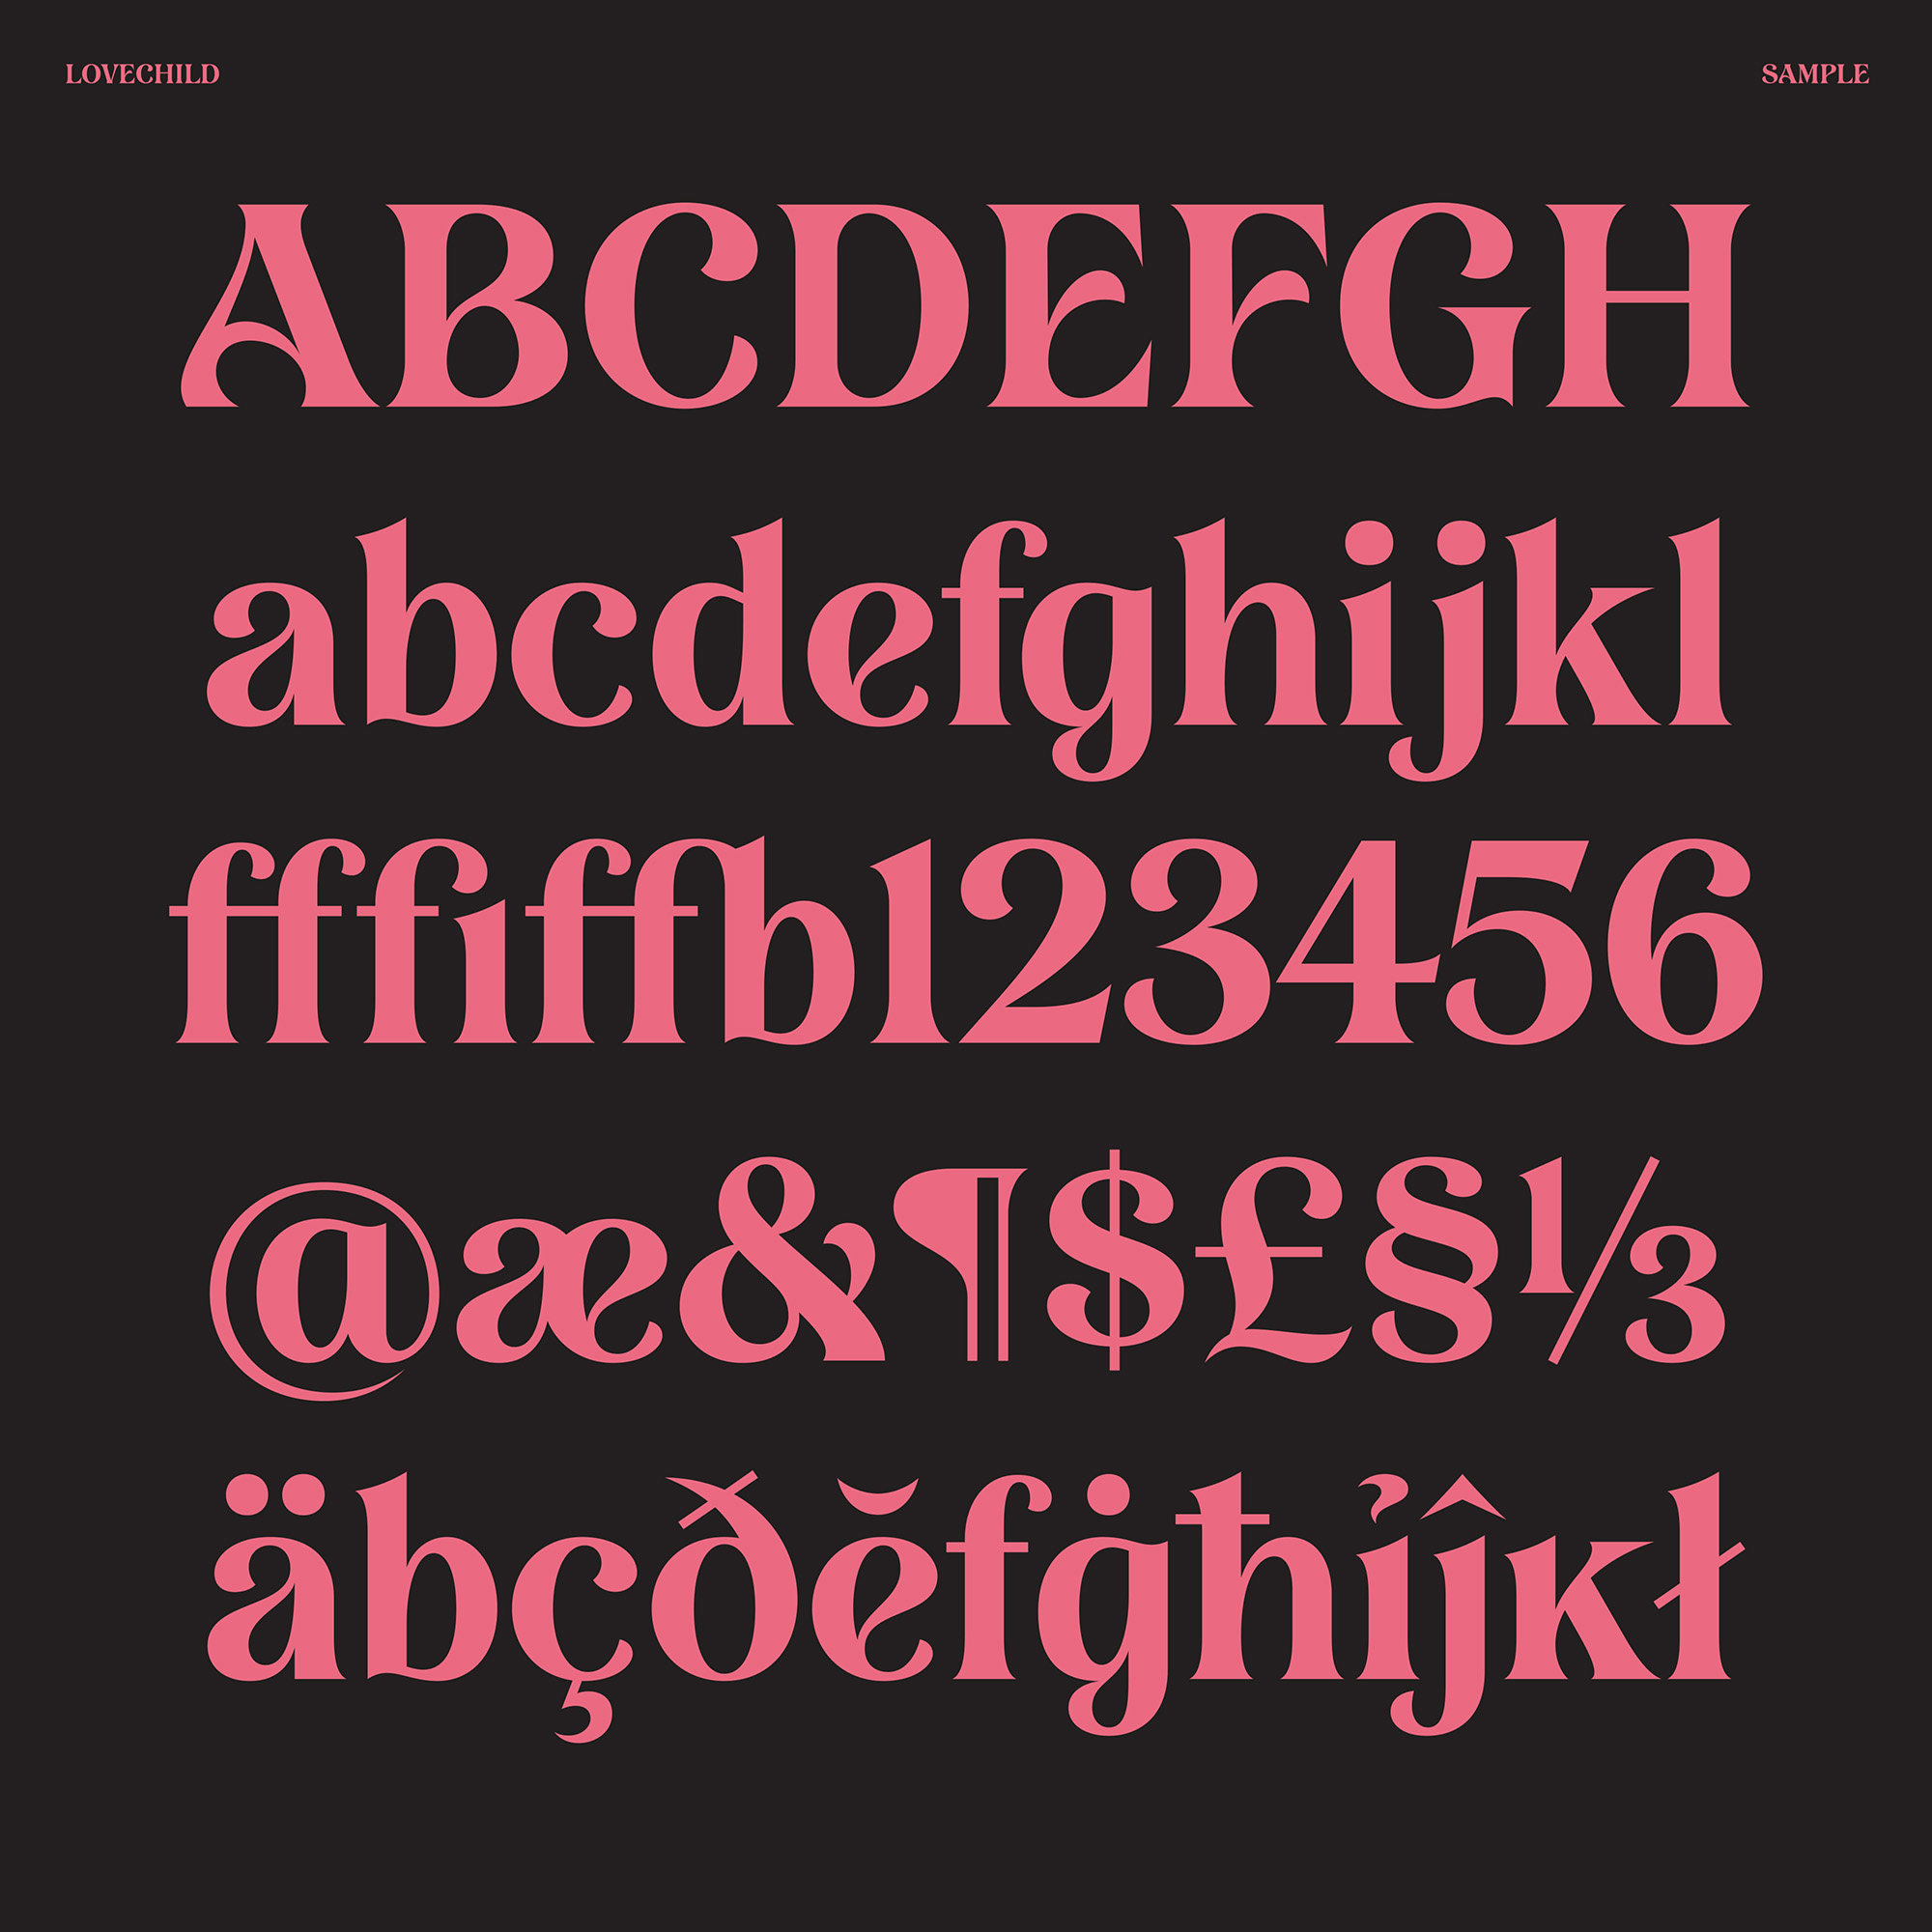 Lovechild, a new font designed by Simon Walker for Typeverything.com